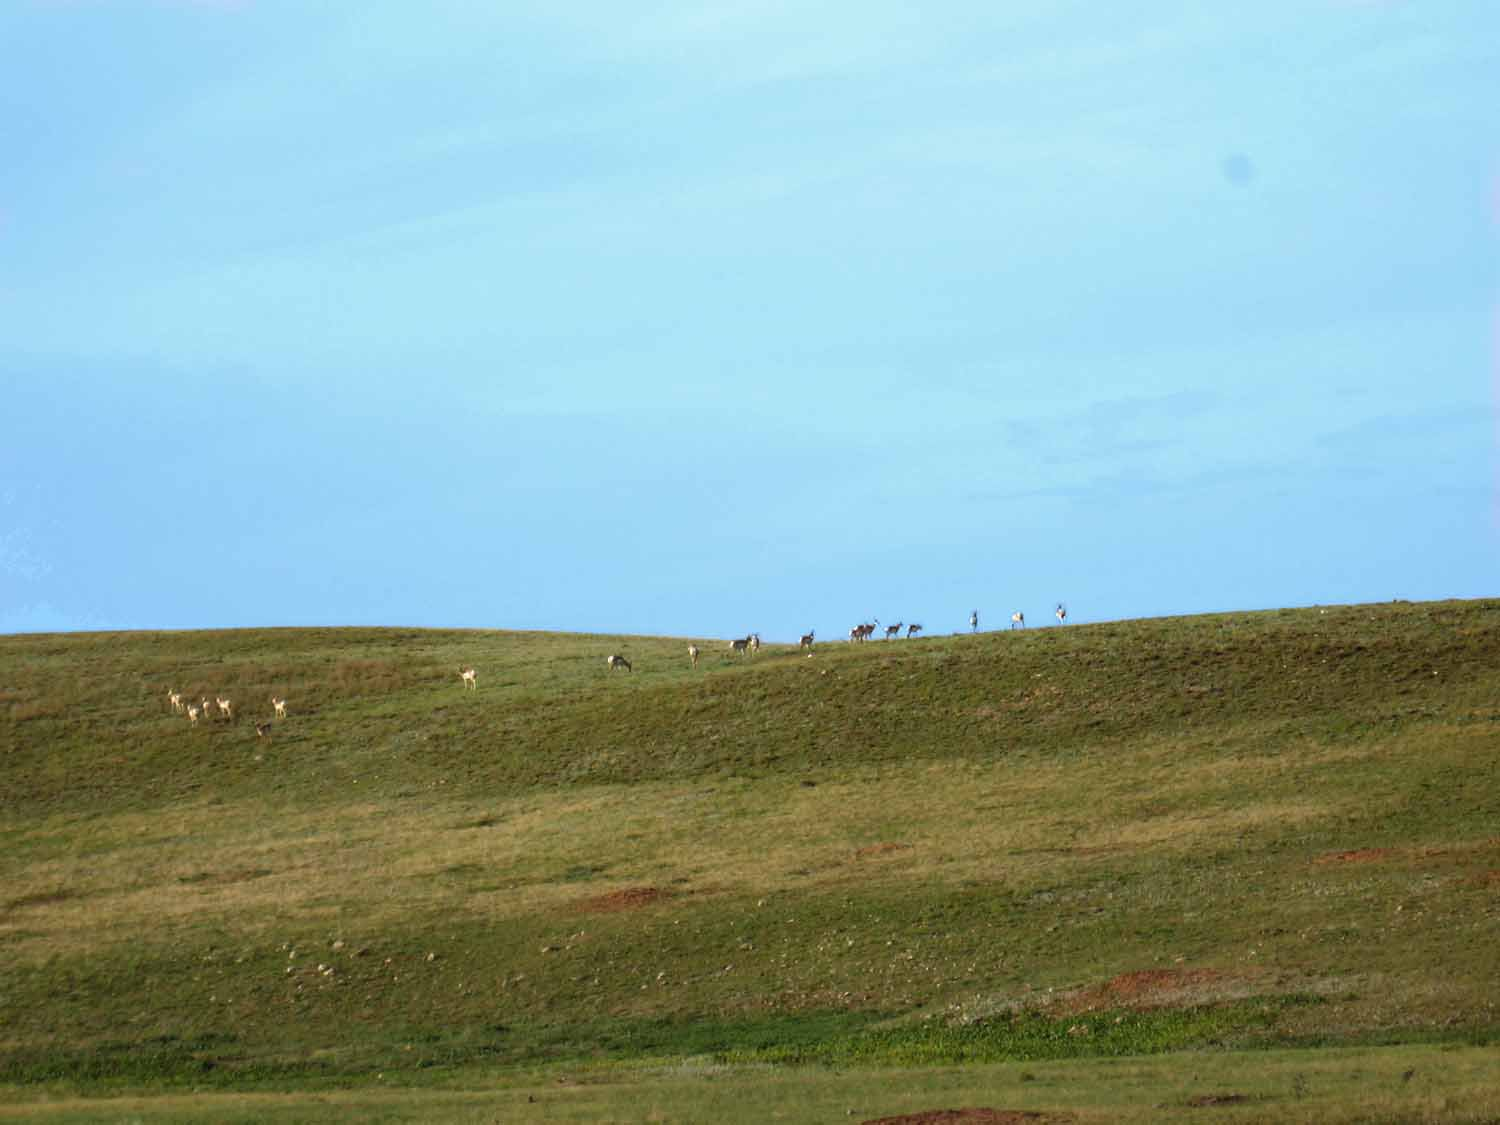 antelope on a hill